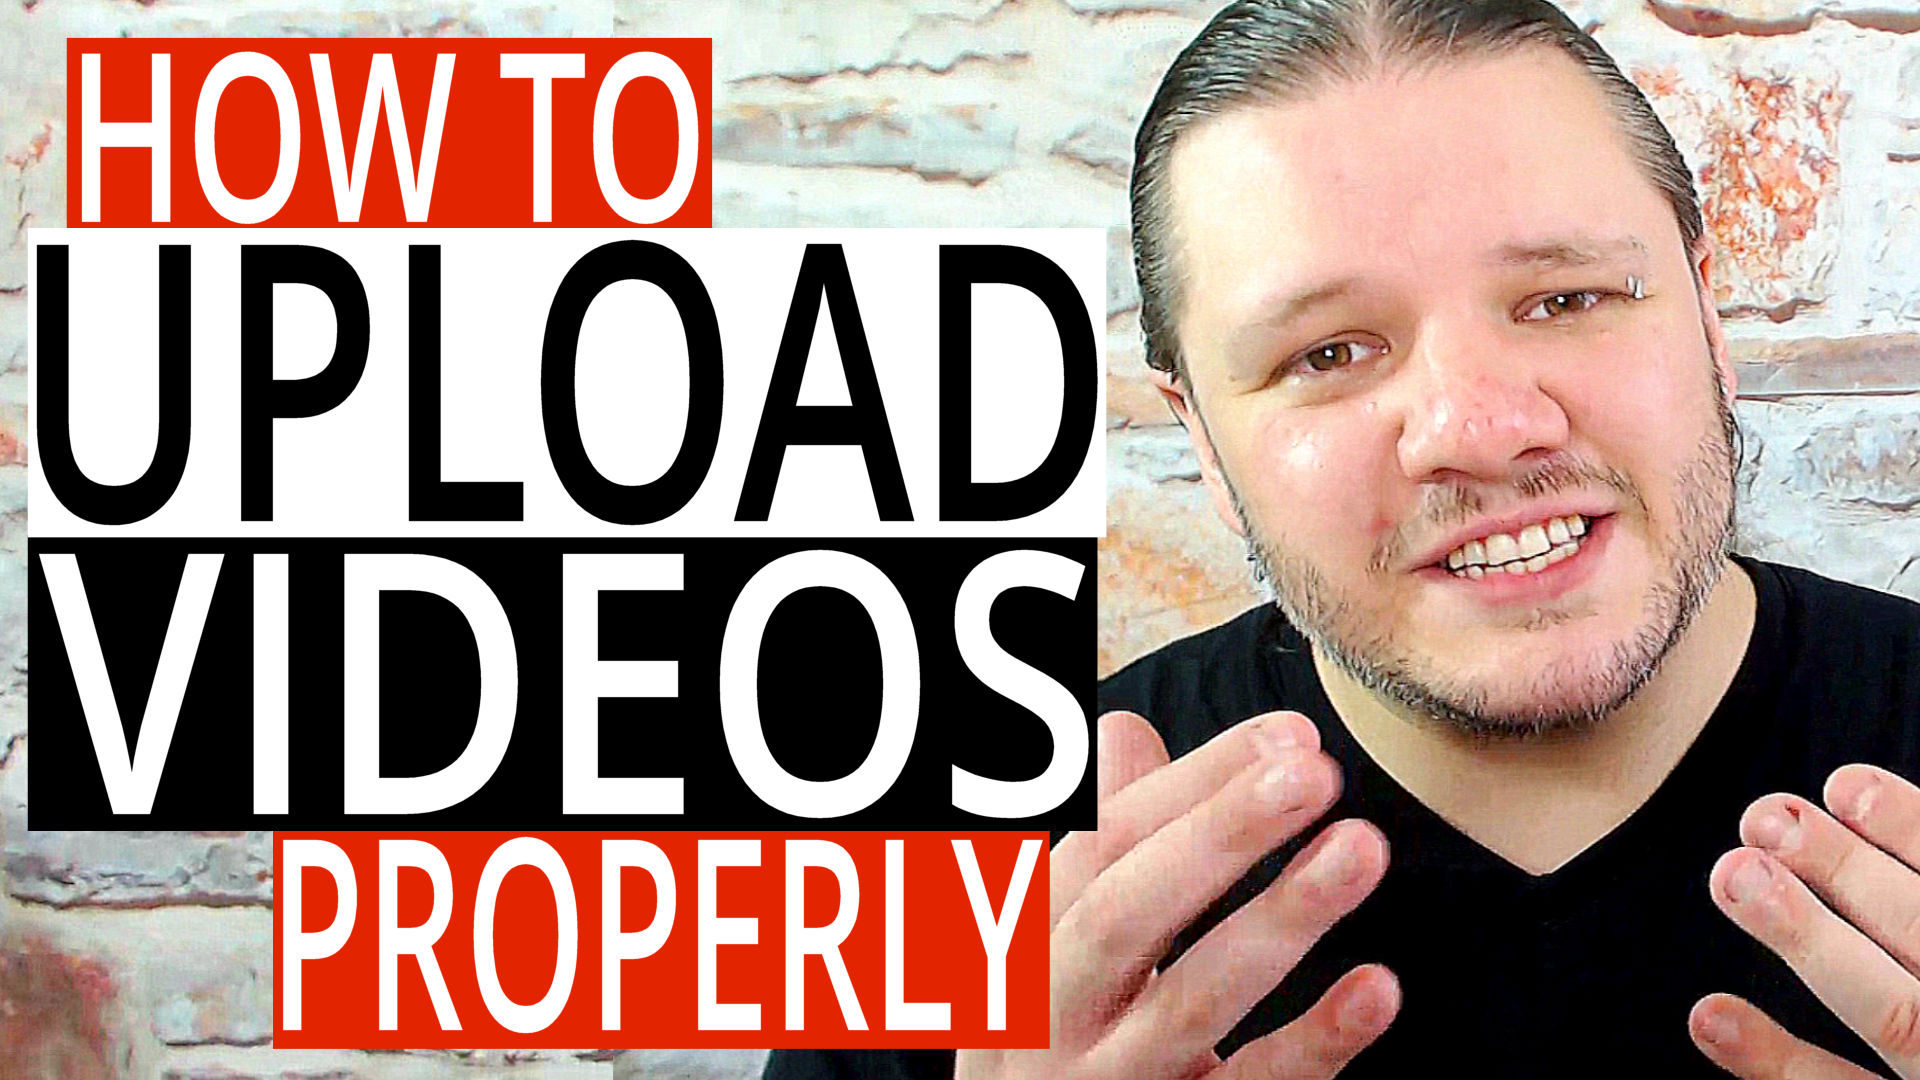 alan spicer,alanspicer,How To Upload A Video To YouTube Properly,how to properly upload videos to youtube,upload videos to youtube,How To Upload A Video To YouTube,tutorial,how to post a video on youtube,how to upload videos on youtube,how to upload video on youtube,how to upload a video on youtube,how to properly upload videos to youtube 2018,upload video to youtube,upload video,upload youtube video,upload videos to youtube faster,upload videos to youtube channel